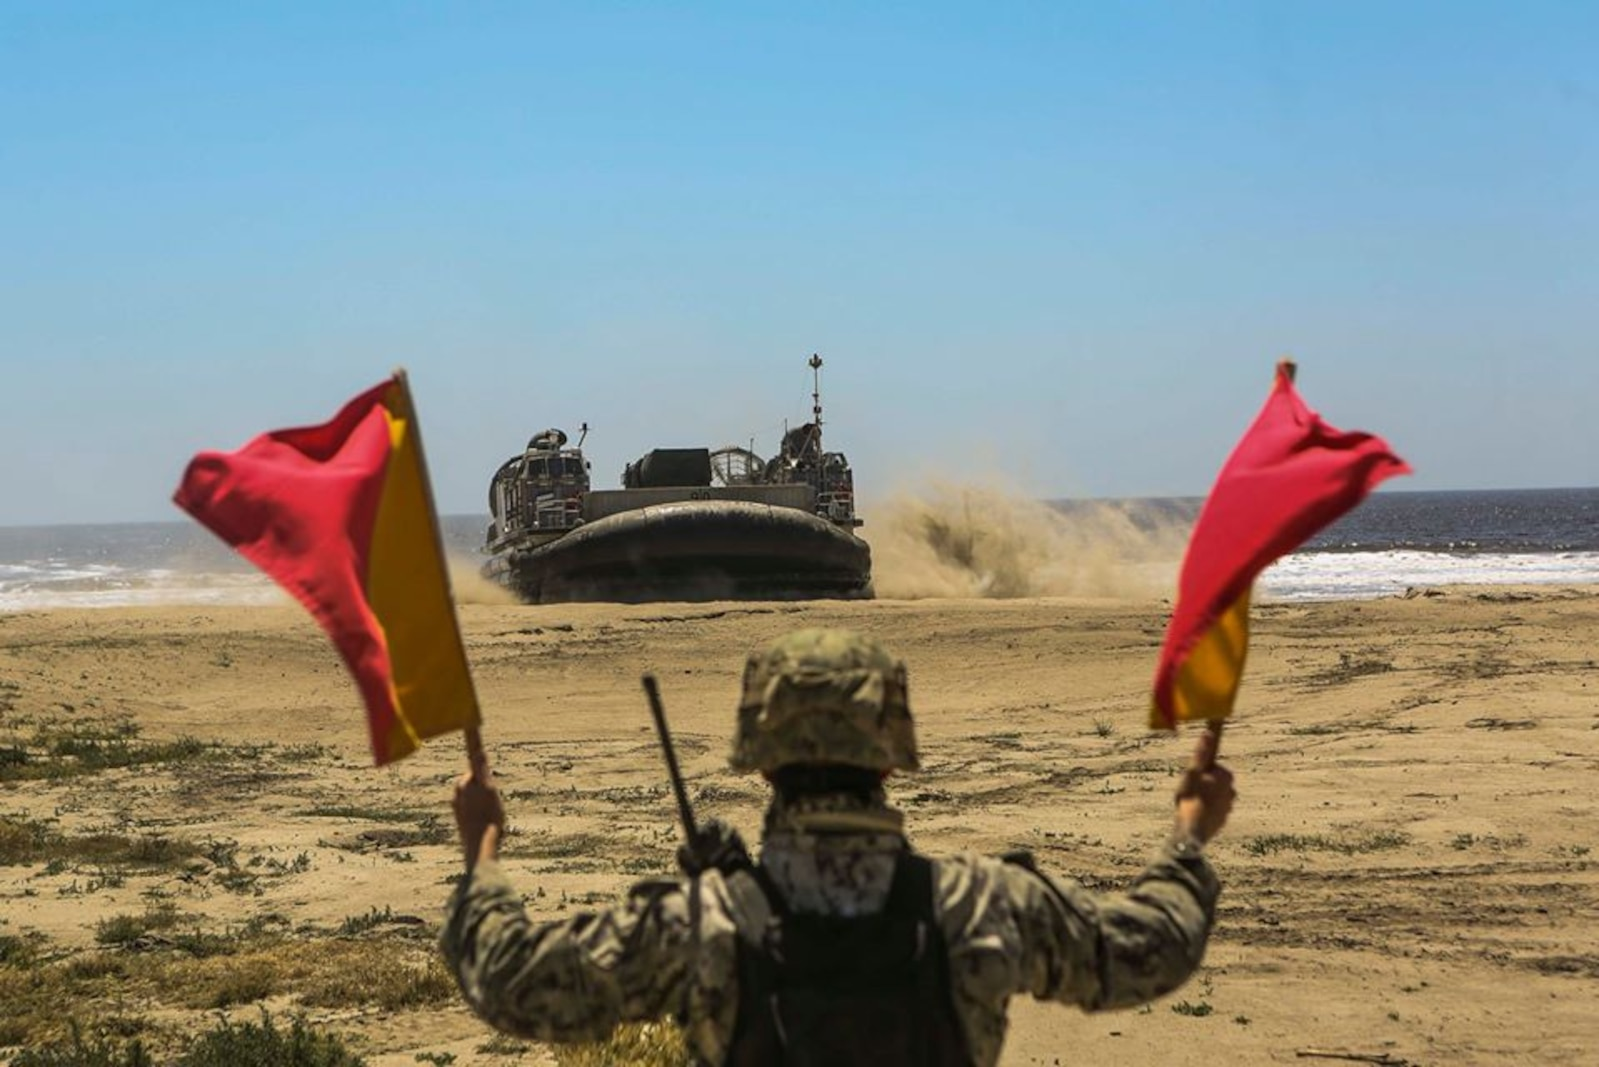 Landing Support Specialist from LS Co, 1st TSB direct an LCAC conducting a landing aboard Red Beach, Camp Pendleton on 4 May 2020.